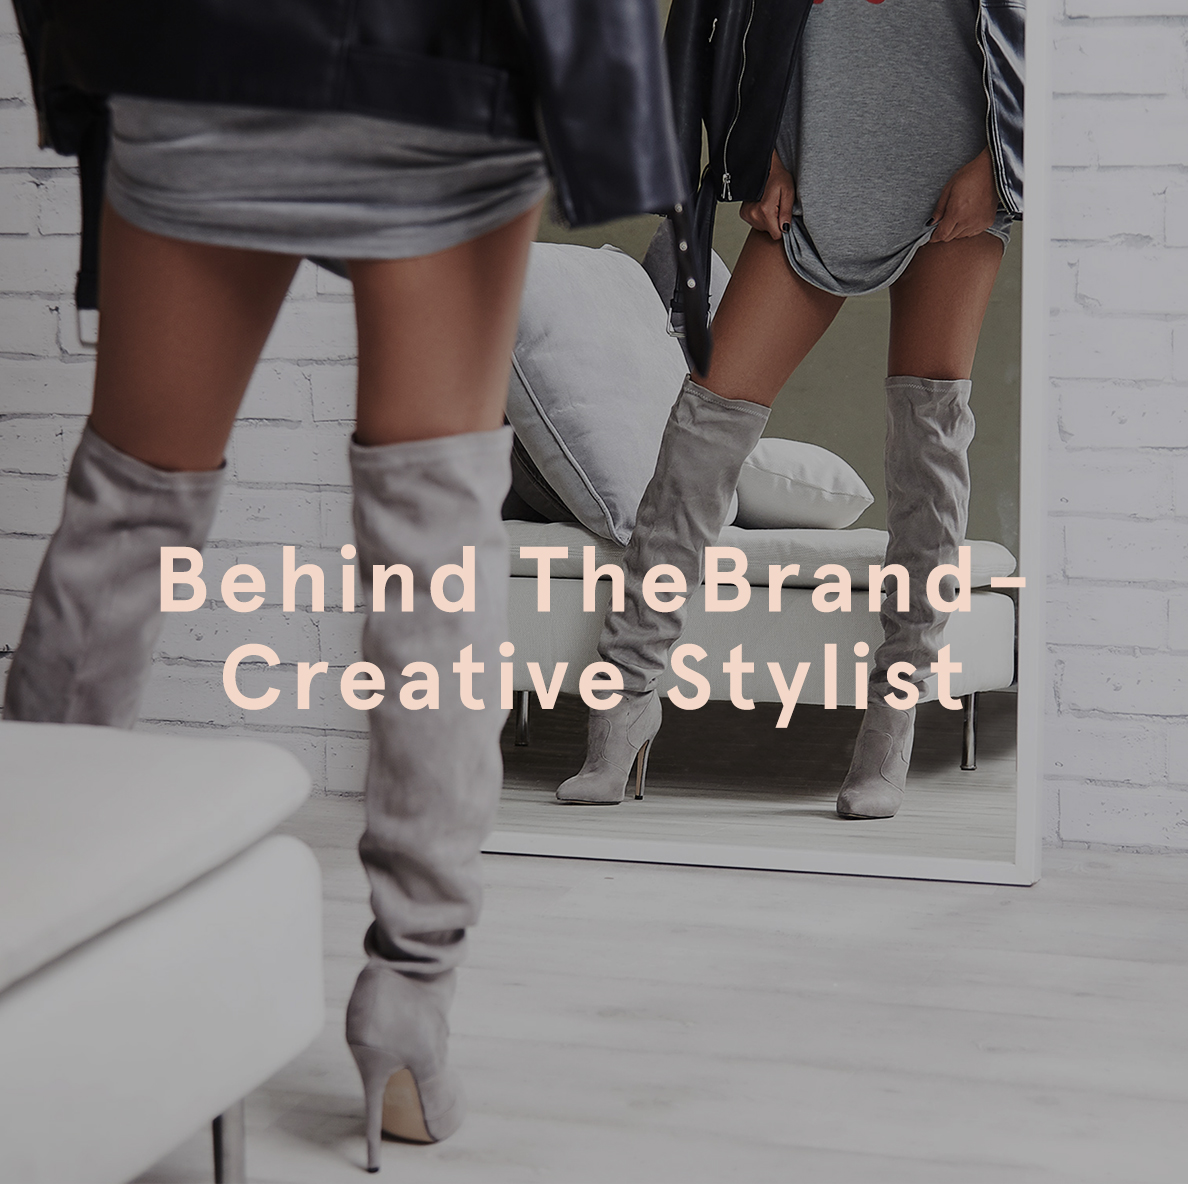 Behind The Brand Ego